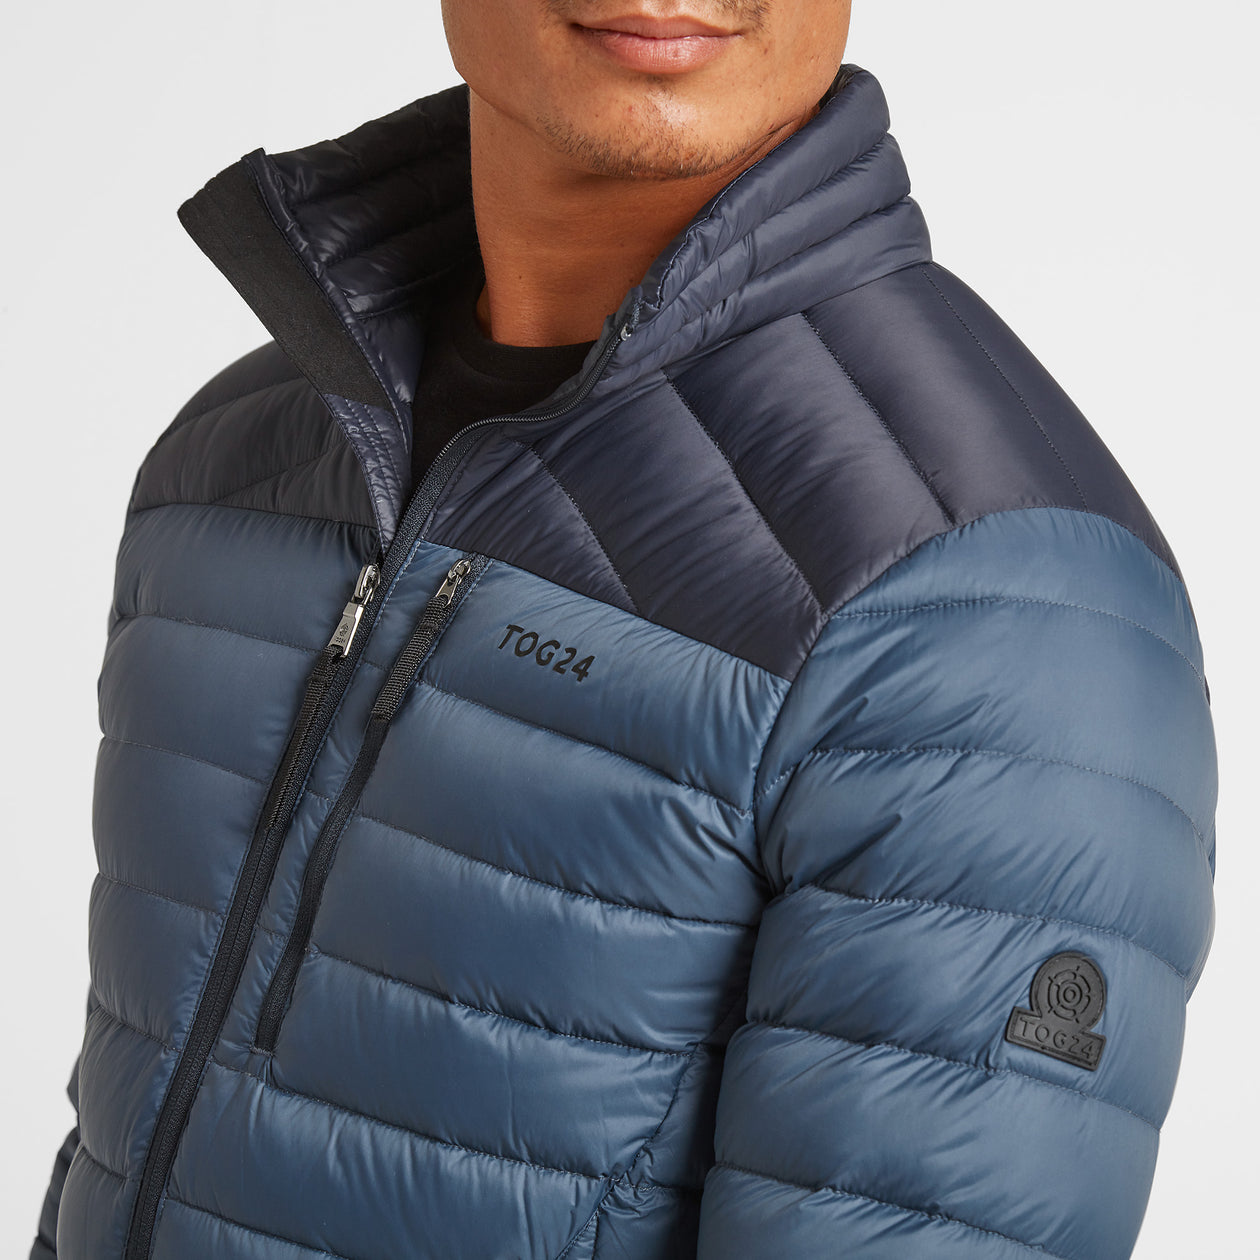 Drax Mens Funnel Down Jacket - Navy/Denim image 4